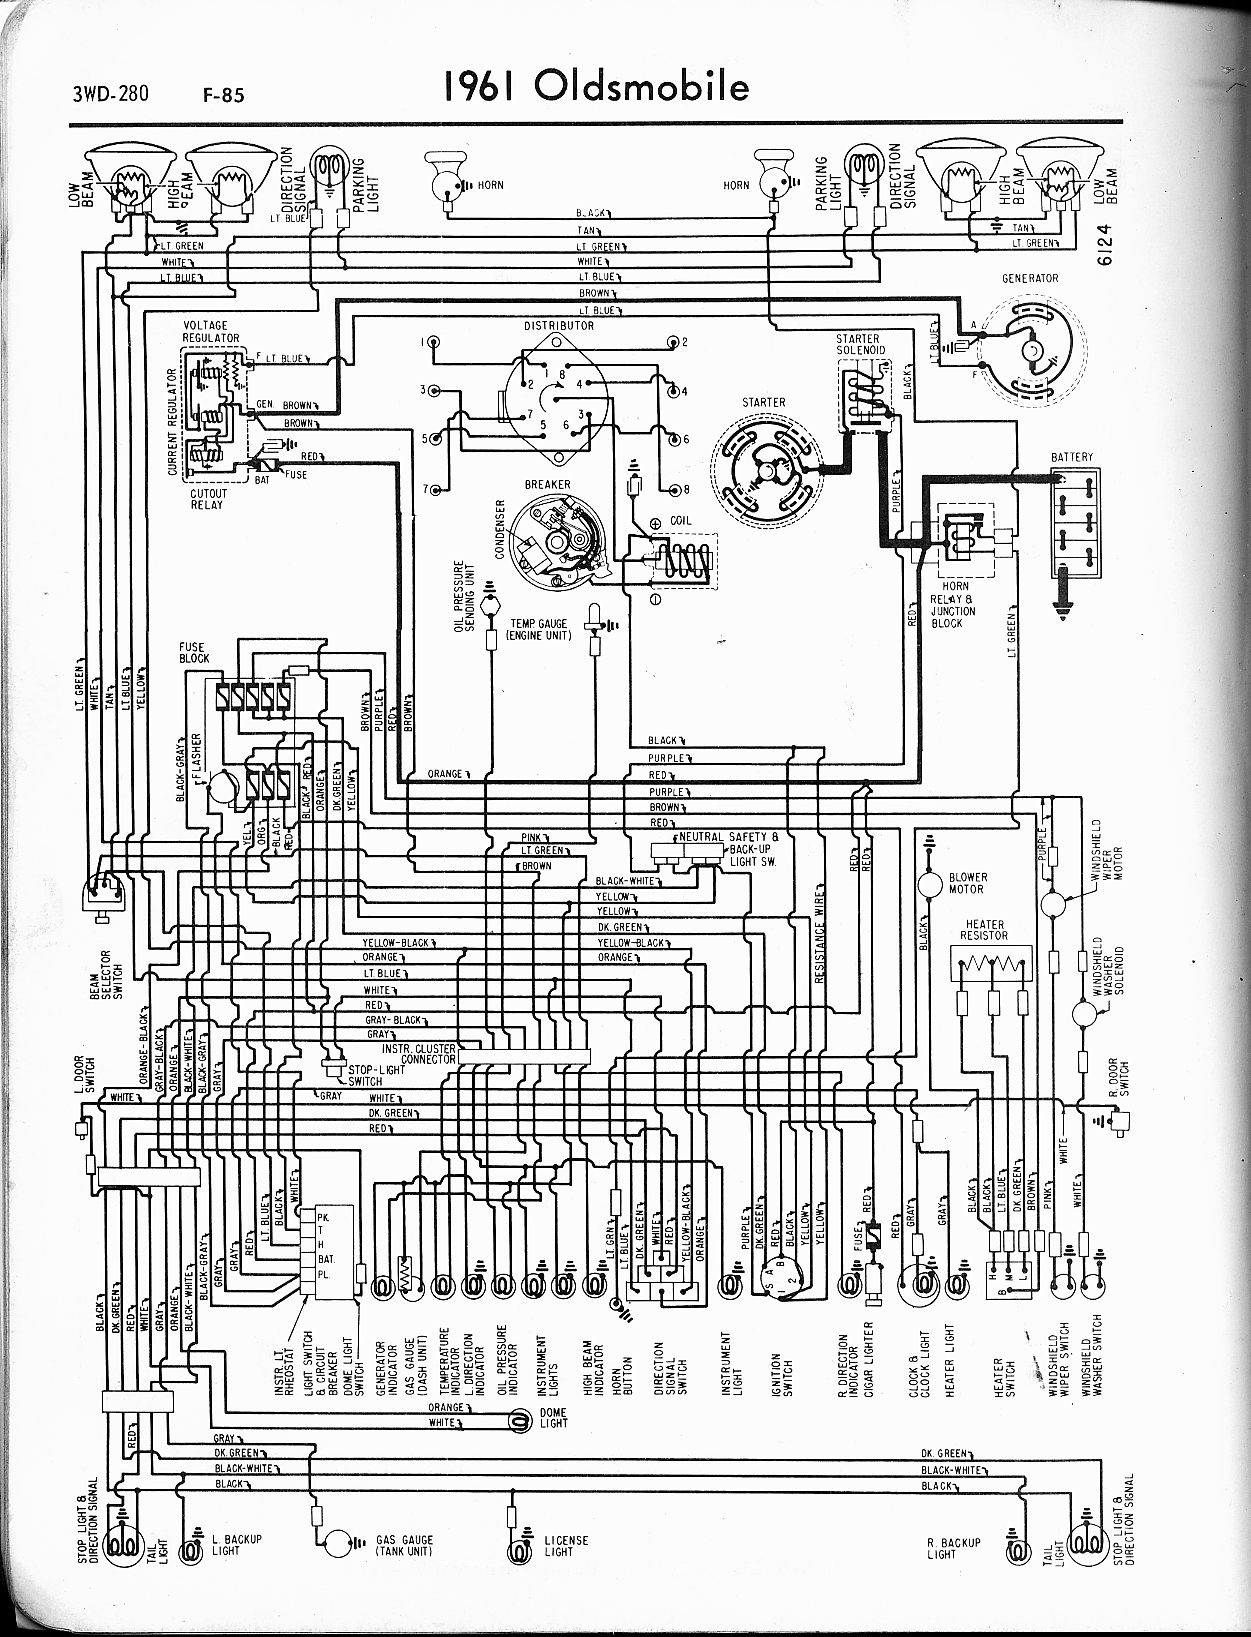 Oldsmobile 442 Wiring Diagram Archive Of Automotive 1971 Shovelhead Diagrams The Old Car Manual Project Rh Oldcarmanualproject Com 1968